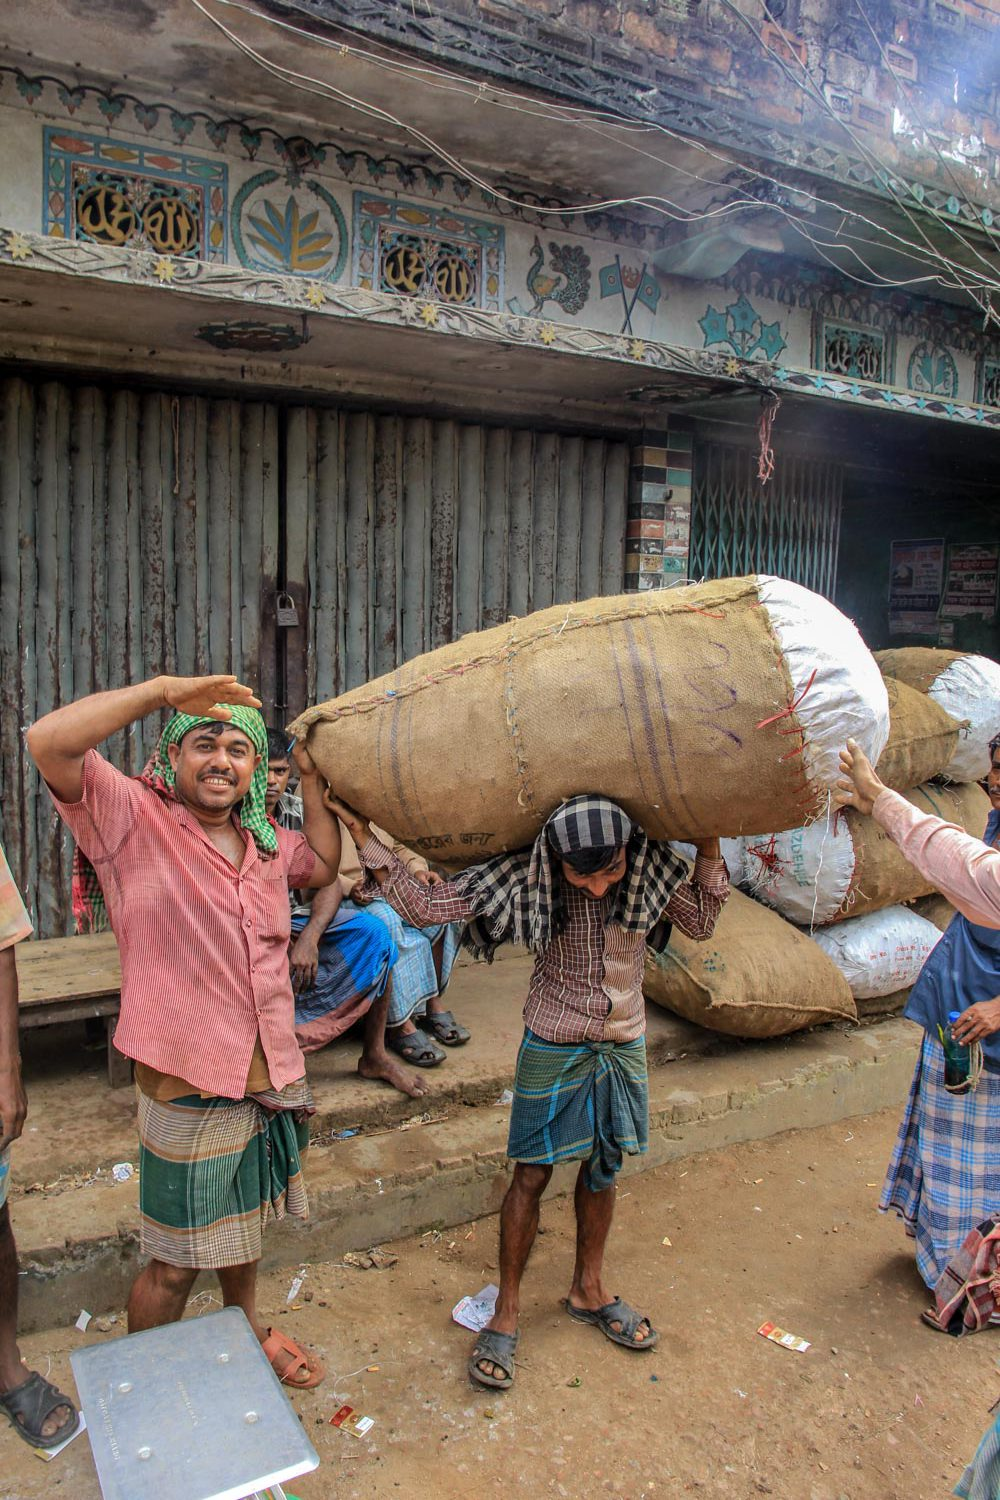 Local posing for a photo, the person on the left side told his friend to lift the heavy bag just for the photo